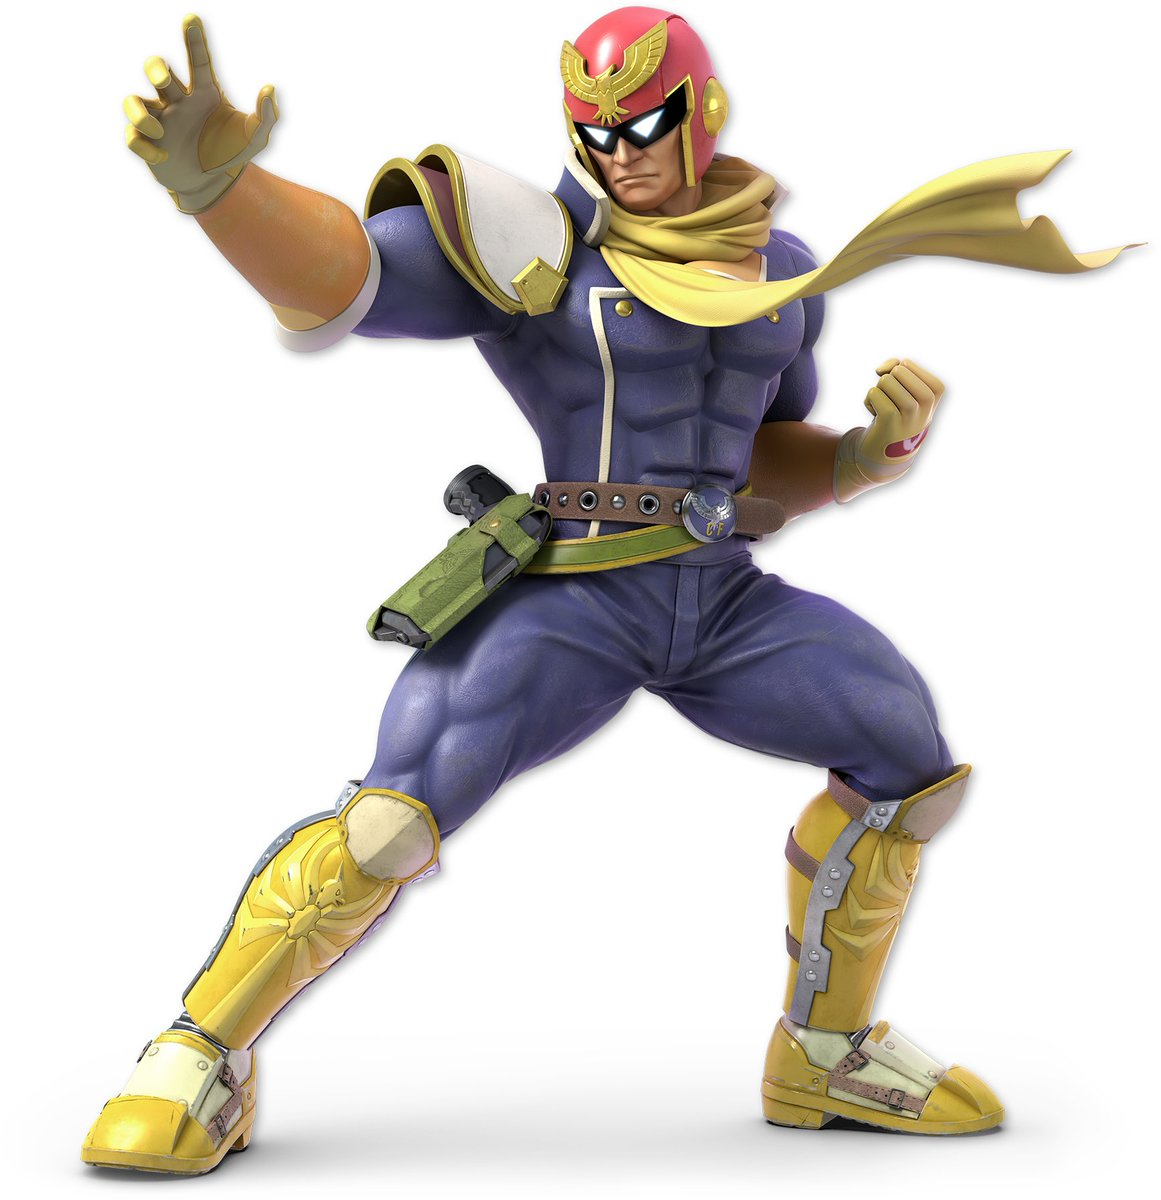 Shut up, you probably main Captain Falcon and want Travis Touchdown in Smash. <br>http://pic.twitter.com/QjE8SdQ6Xu